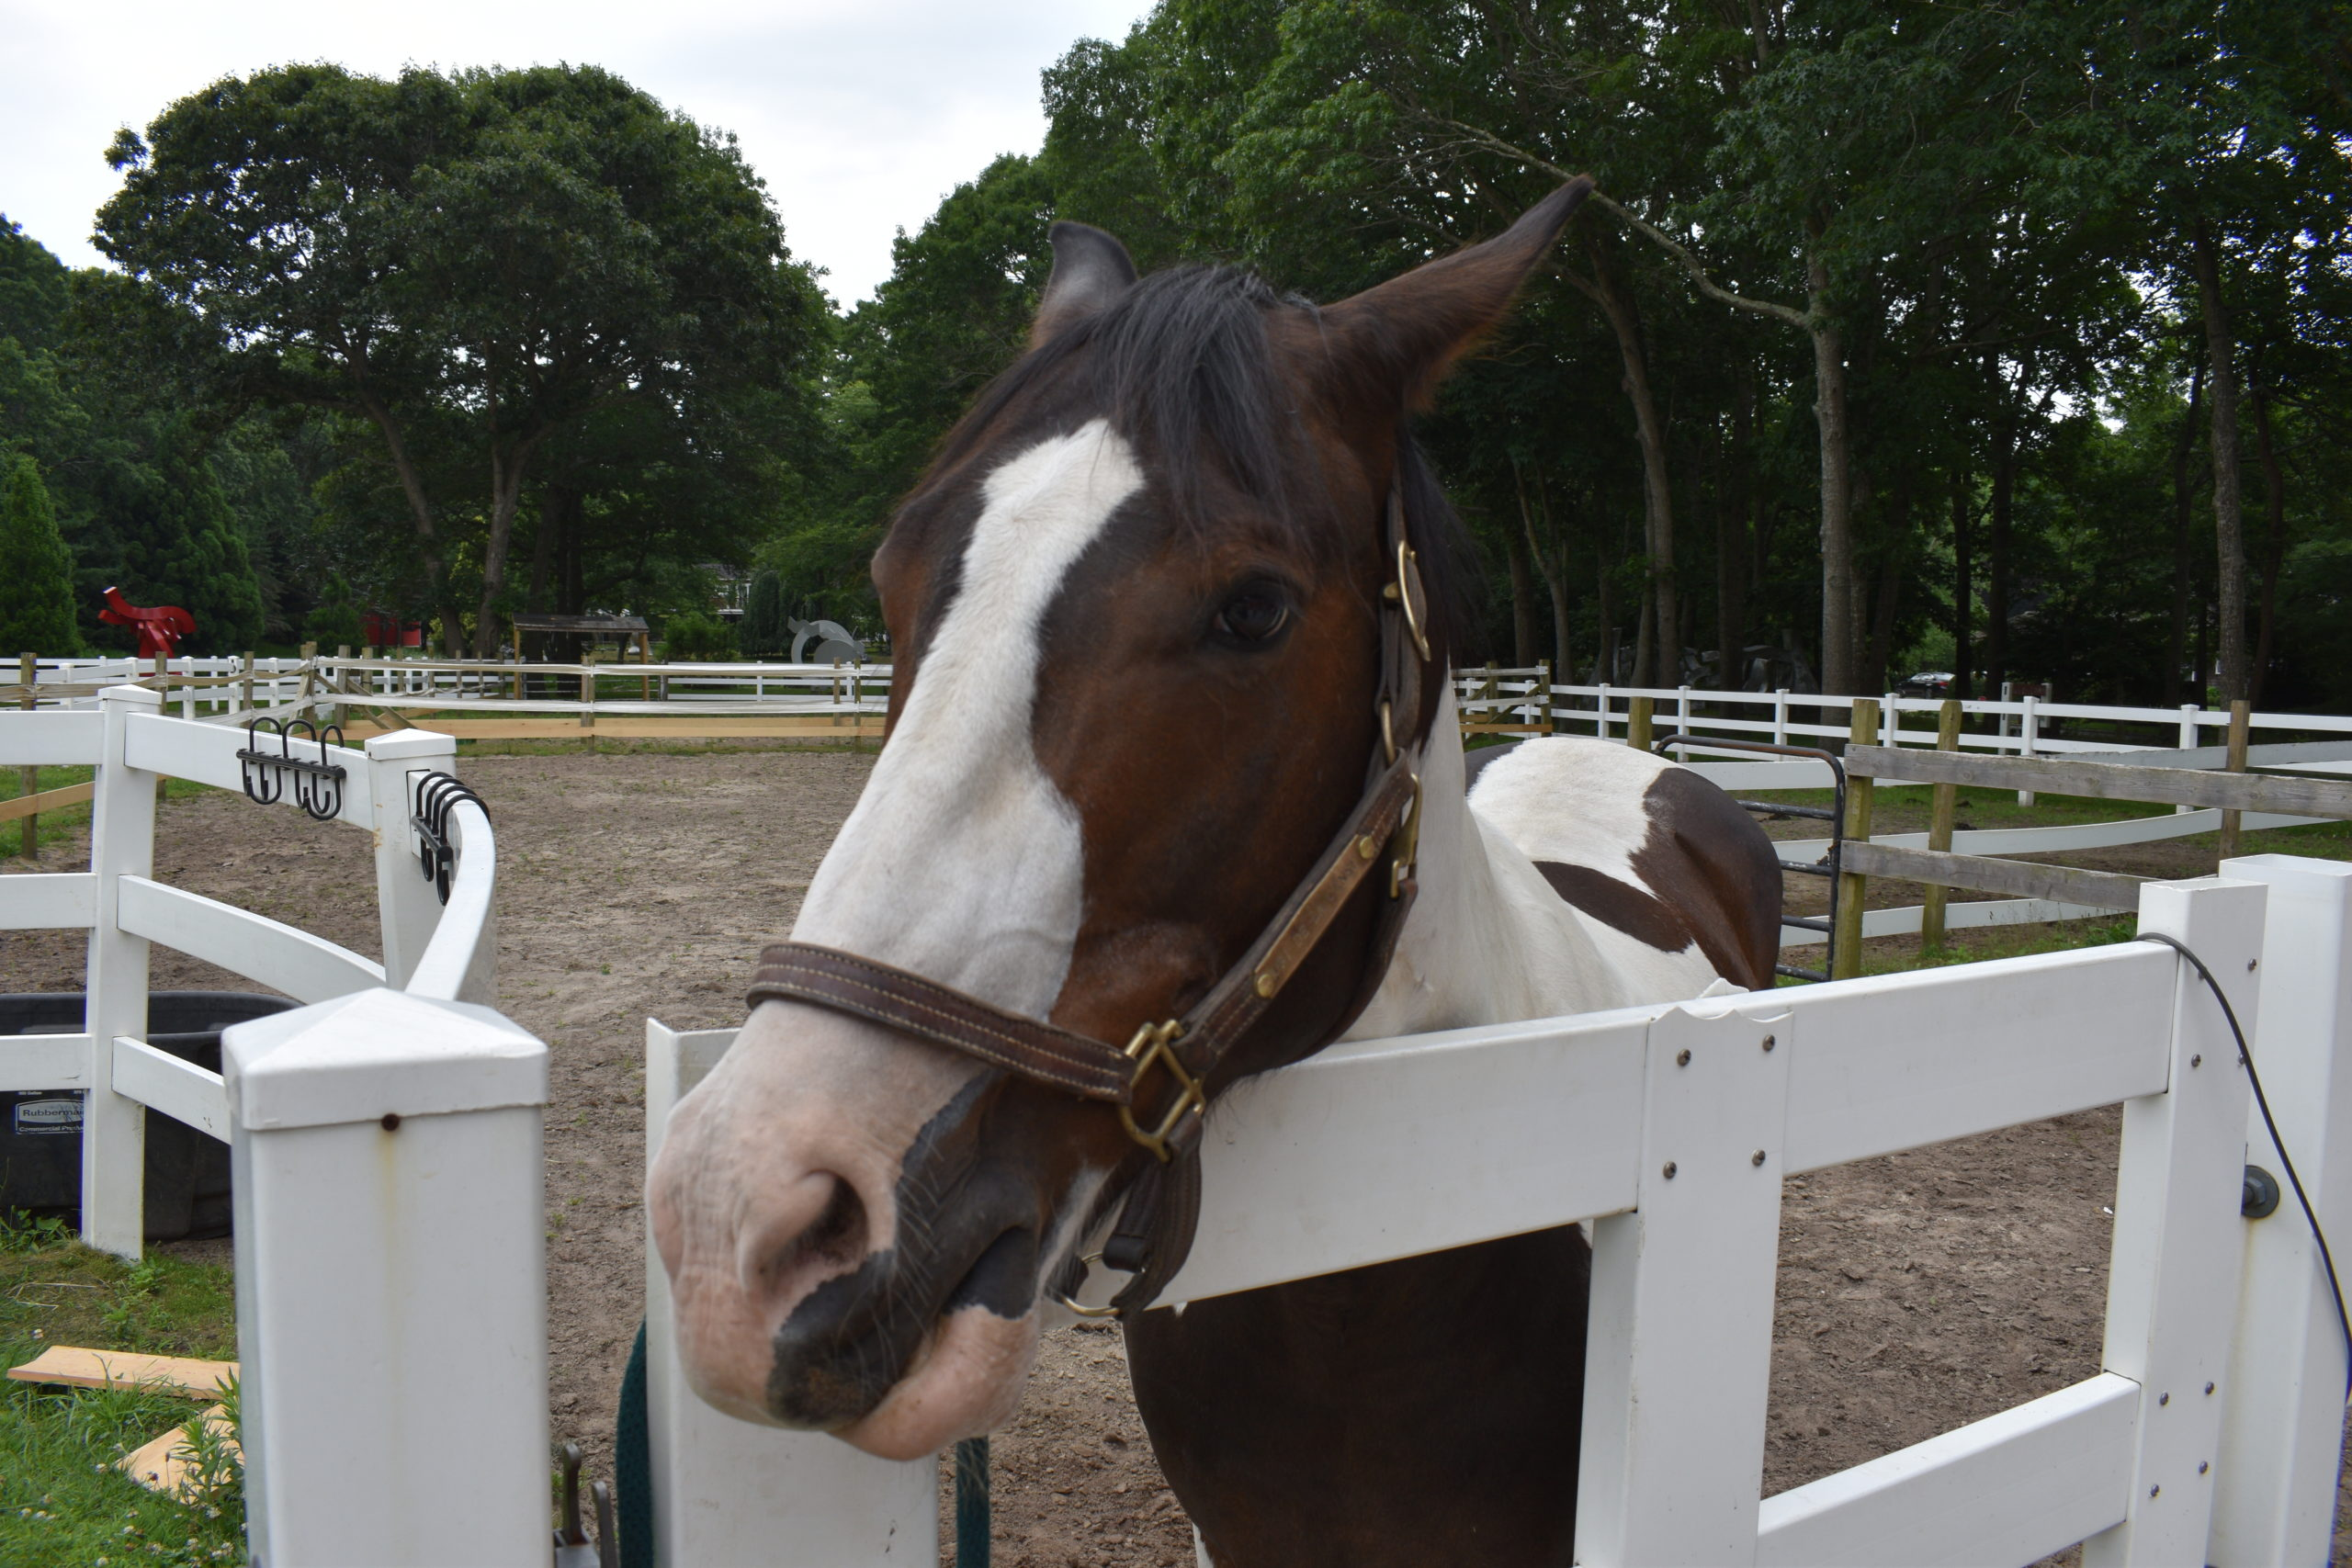 Meet Paco, a silly horse who likes to roll in the warm mud!